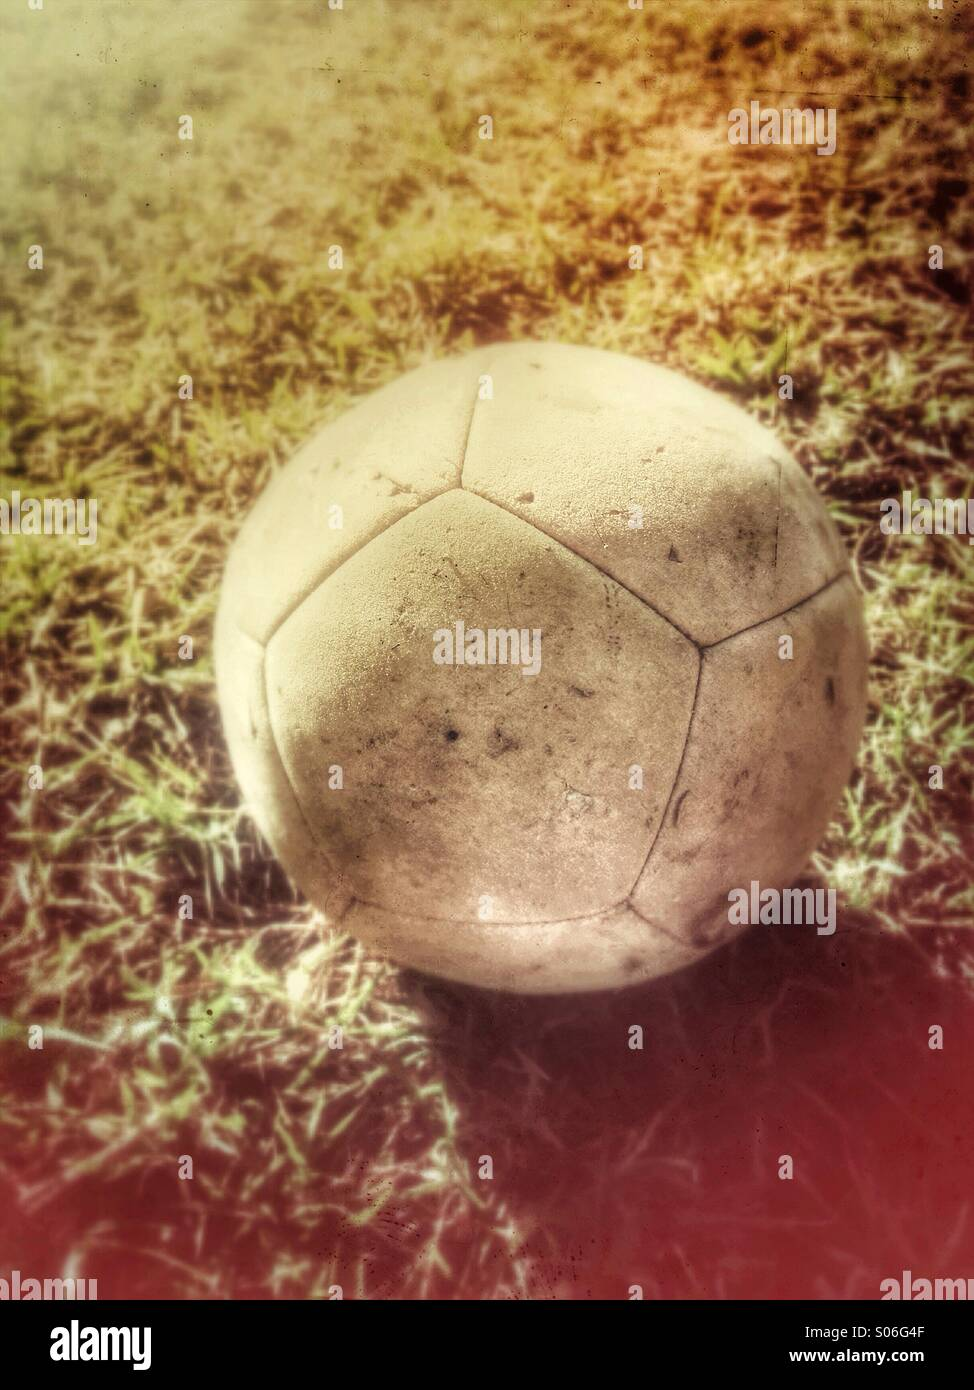 Soccer ball. - Stock Image